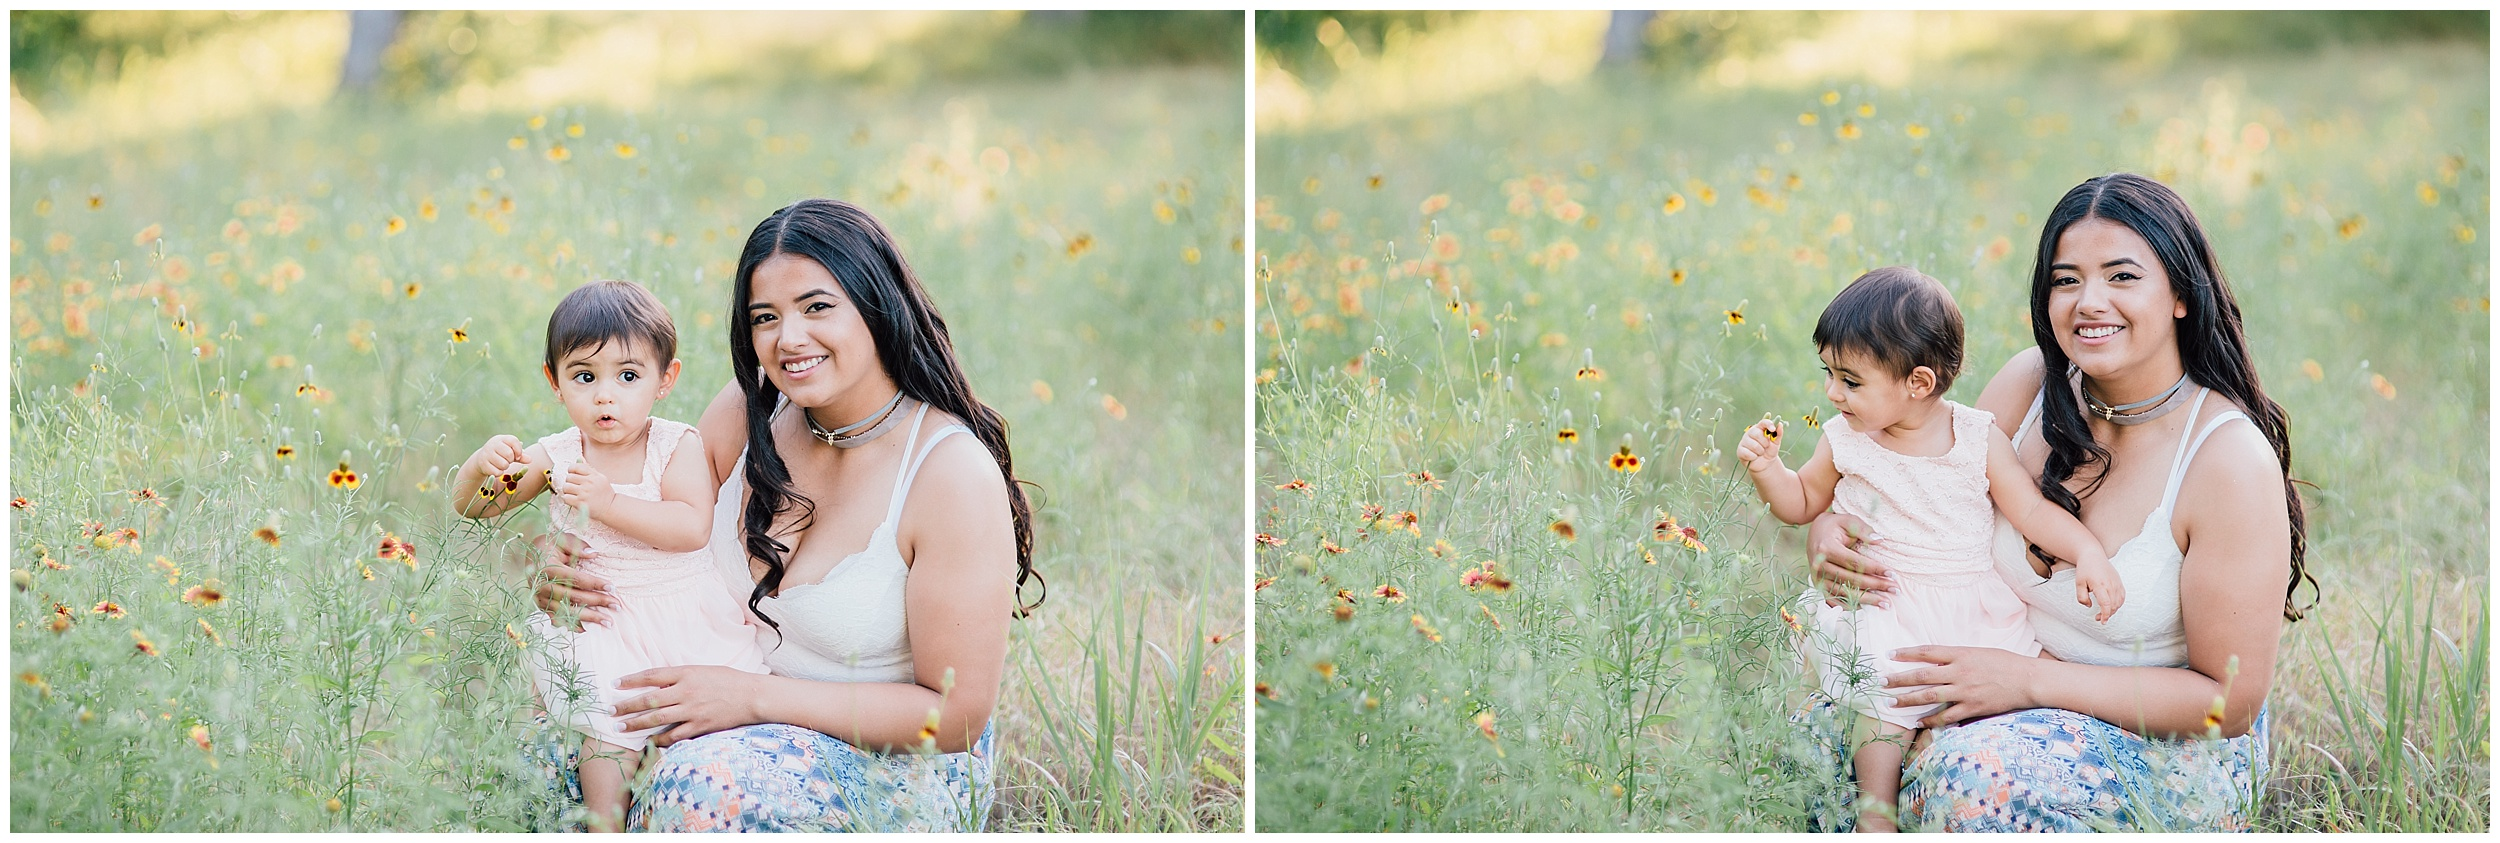 Austin Family Photographer11.jpg